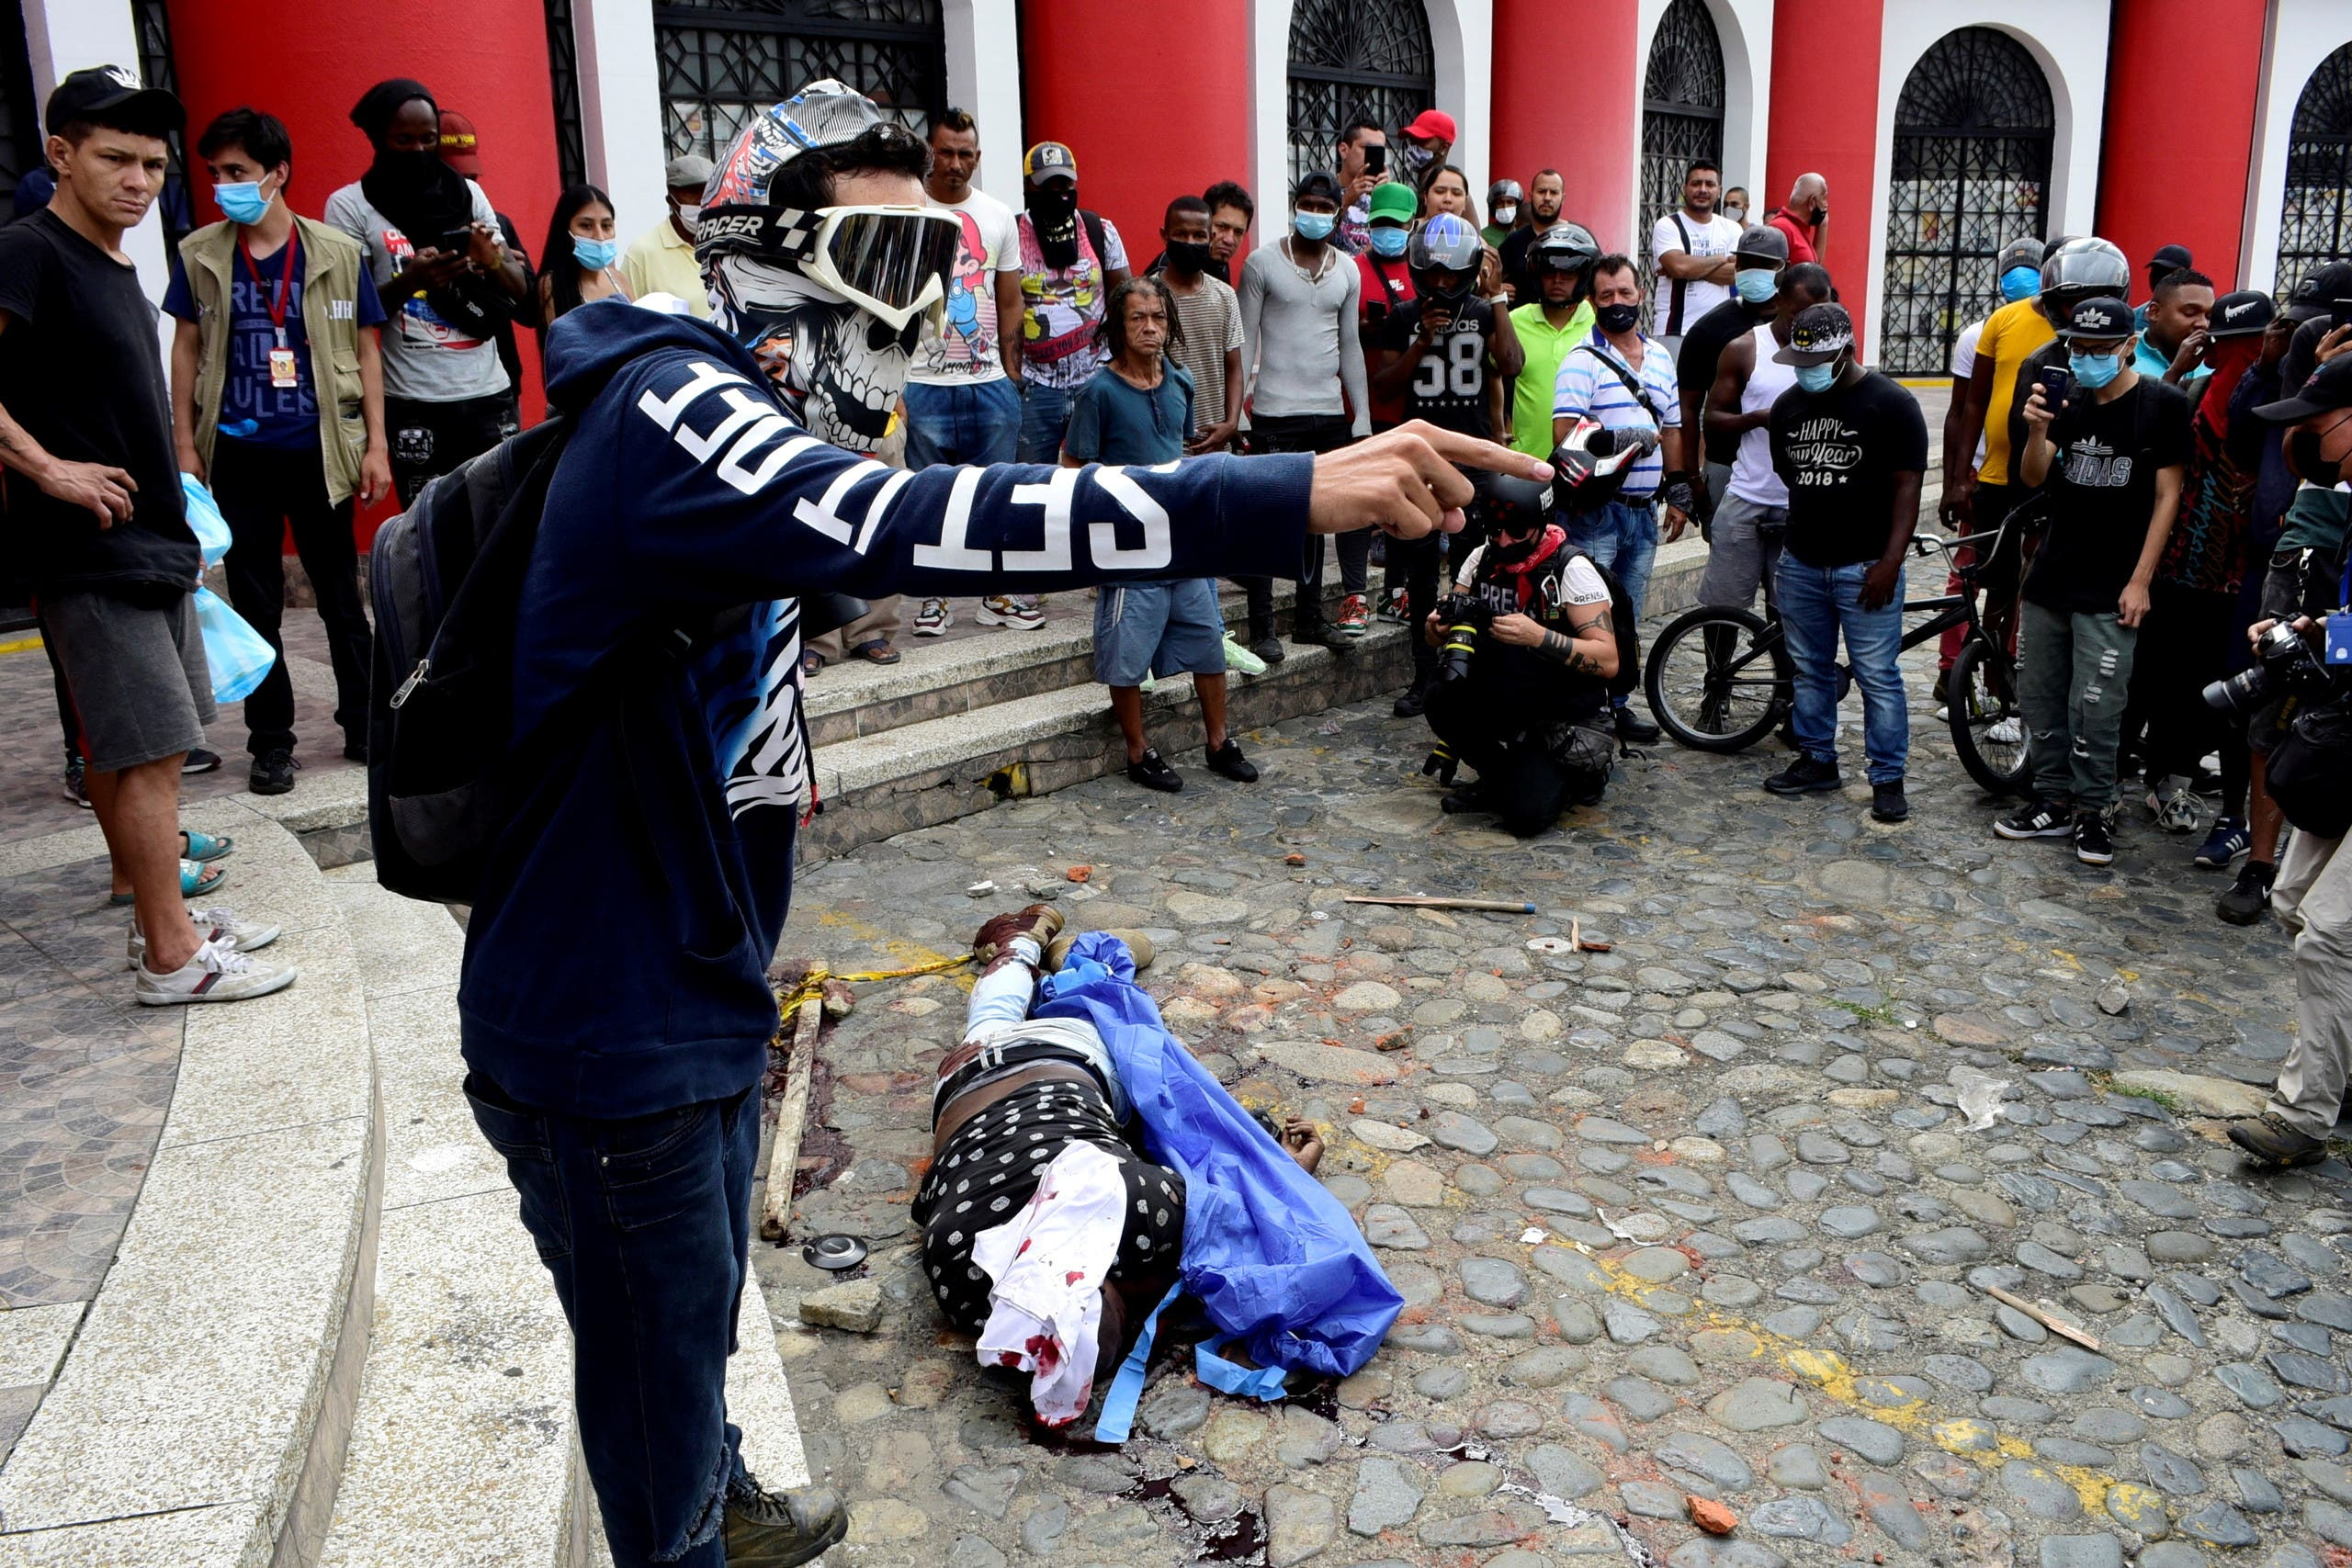 A demonstrator yells as he stands next to the body of an agent of the attorney general's investigative unit, who opened fire on civilians before being killed, as protests demanding government action to tackle poverty, police violence and inequalities in healthcare and education systems continue, in Cali, Colombia May 28, 2021. (Reuters)